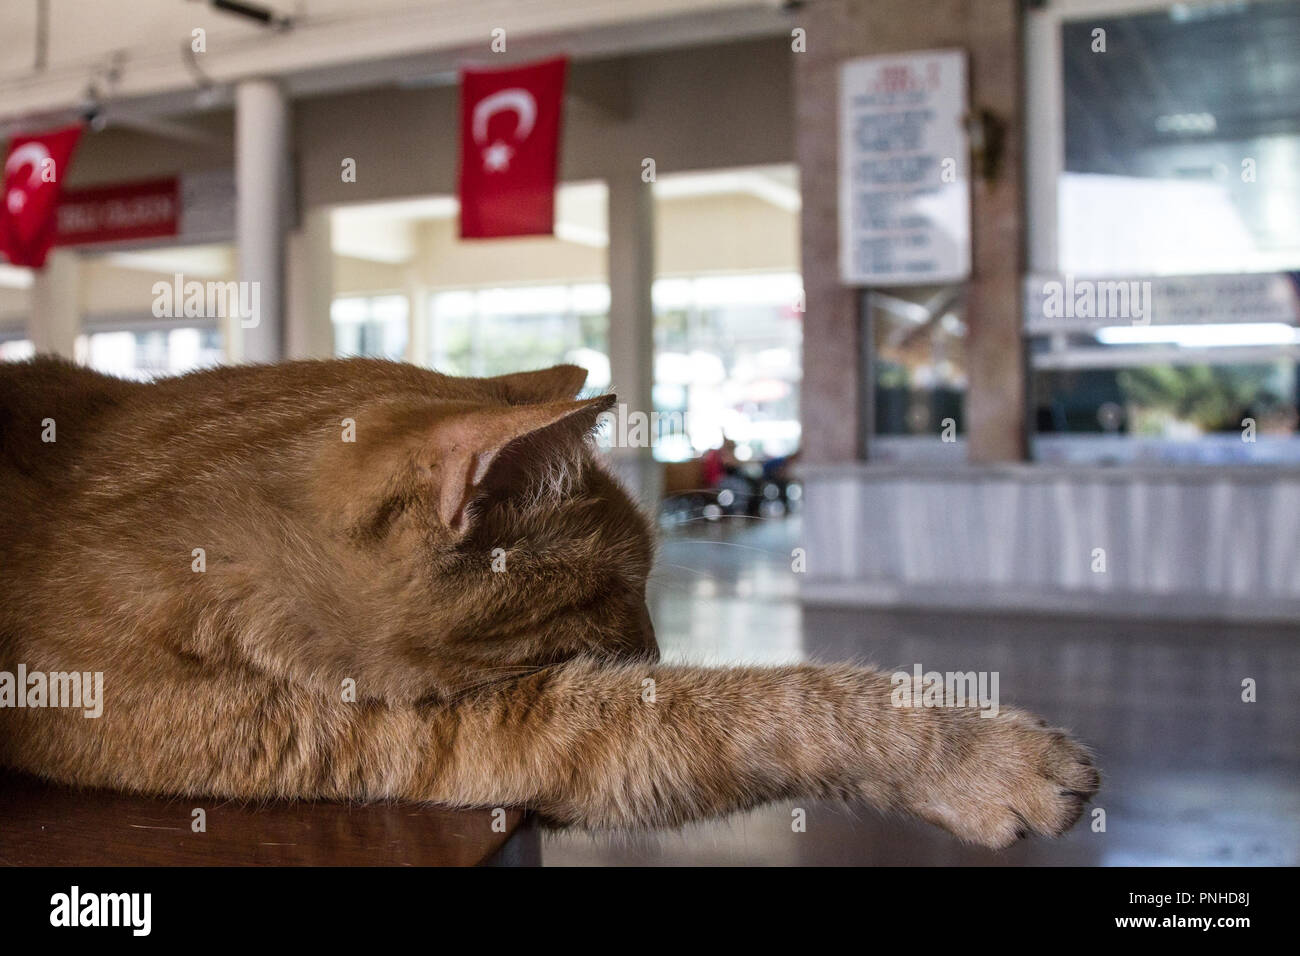 Stray ginger cat sleeping in the waiting room of Sirkeci train station in Istanbul while a Turkish flag can be seen in the background. Cats are one of - Stock Image